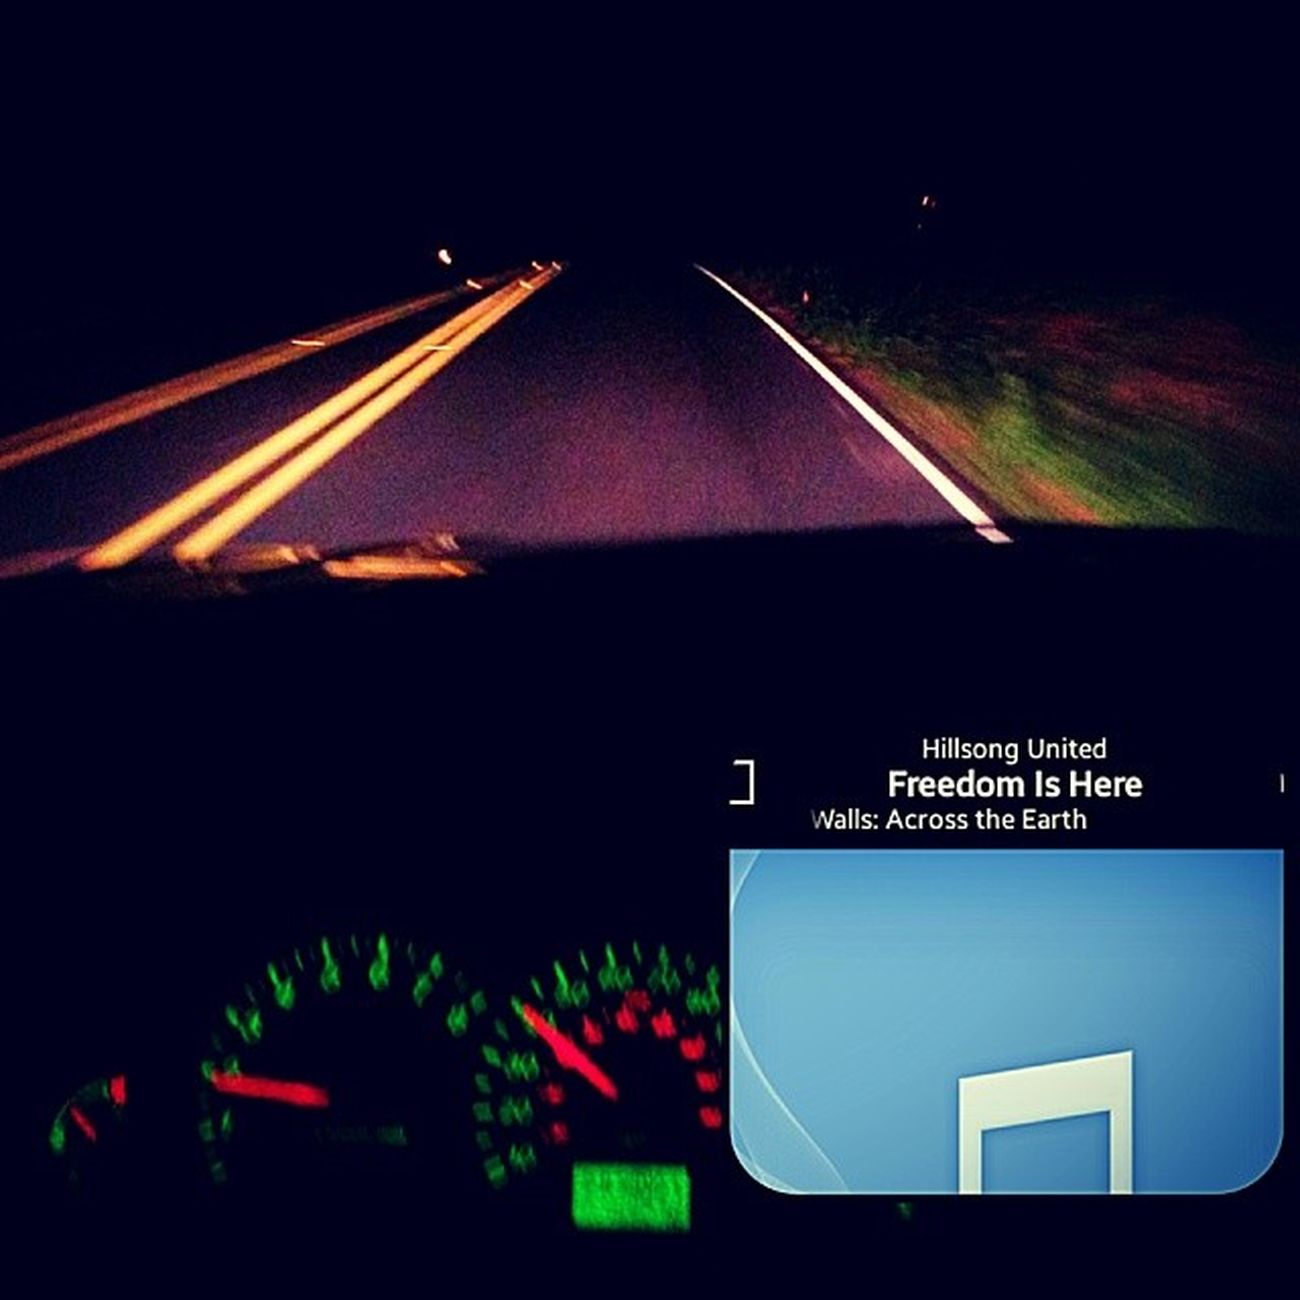 On the way home from the gym with my man. And one of my favorite songs ever.♥♥♥ HillsongUnited Freedom Here Love driving music mazda